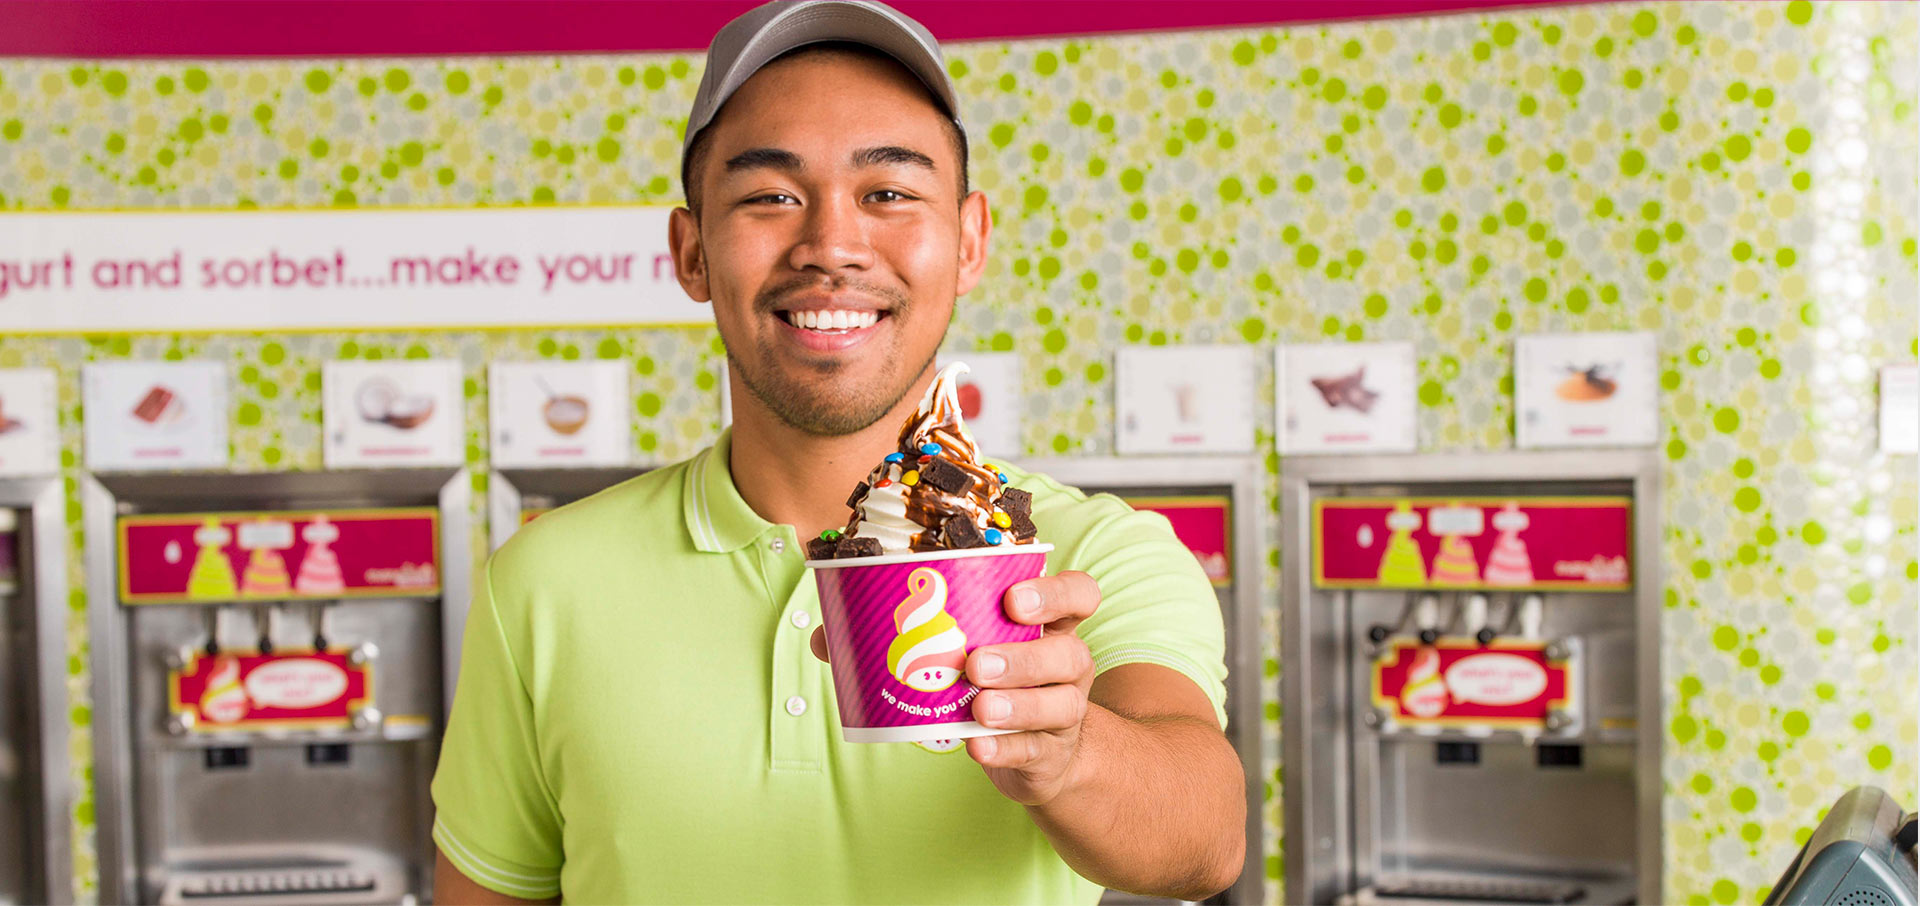 A team member holding up a cup of frozen yogurt